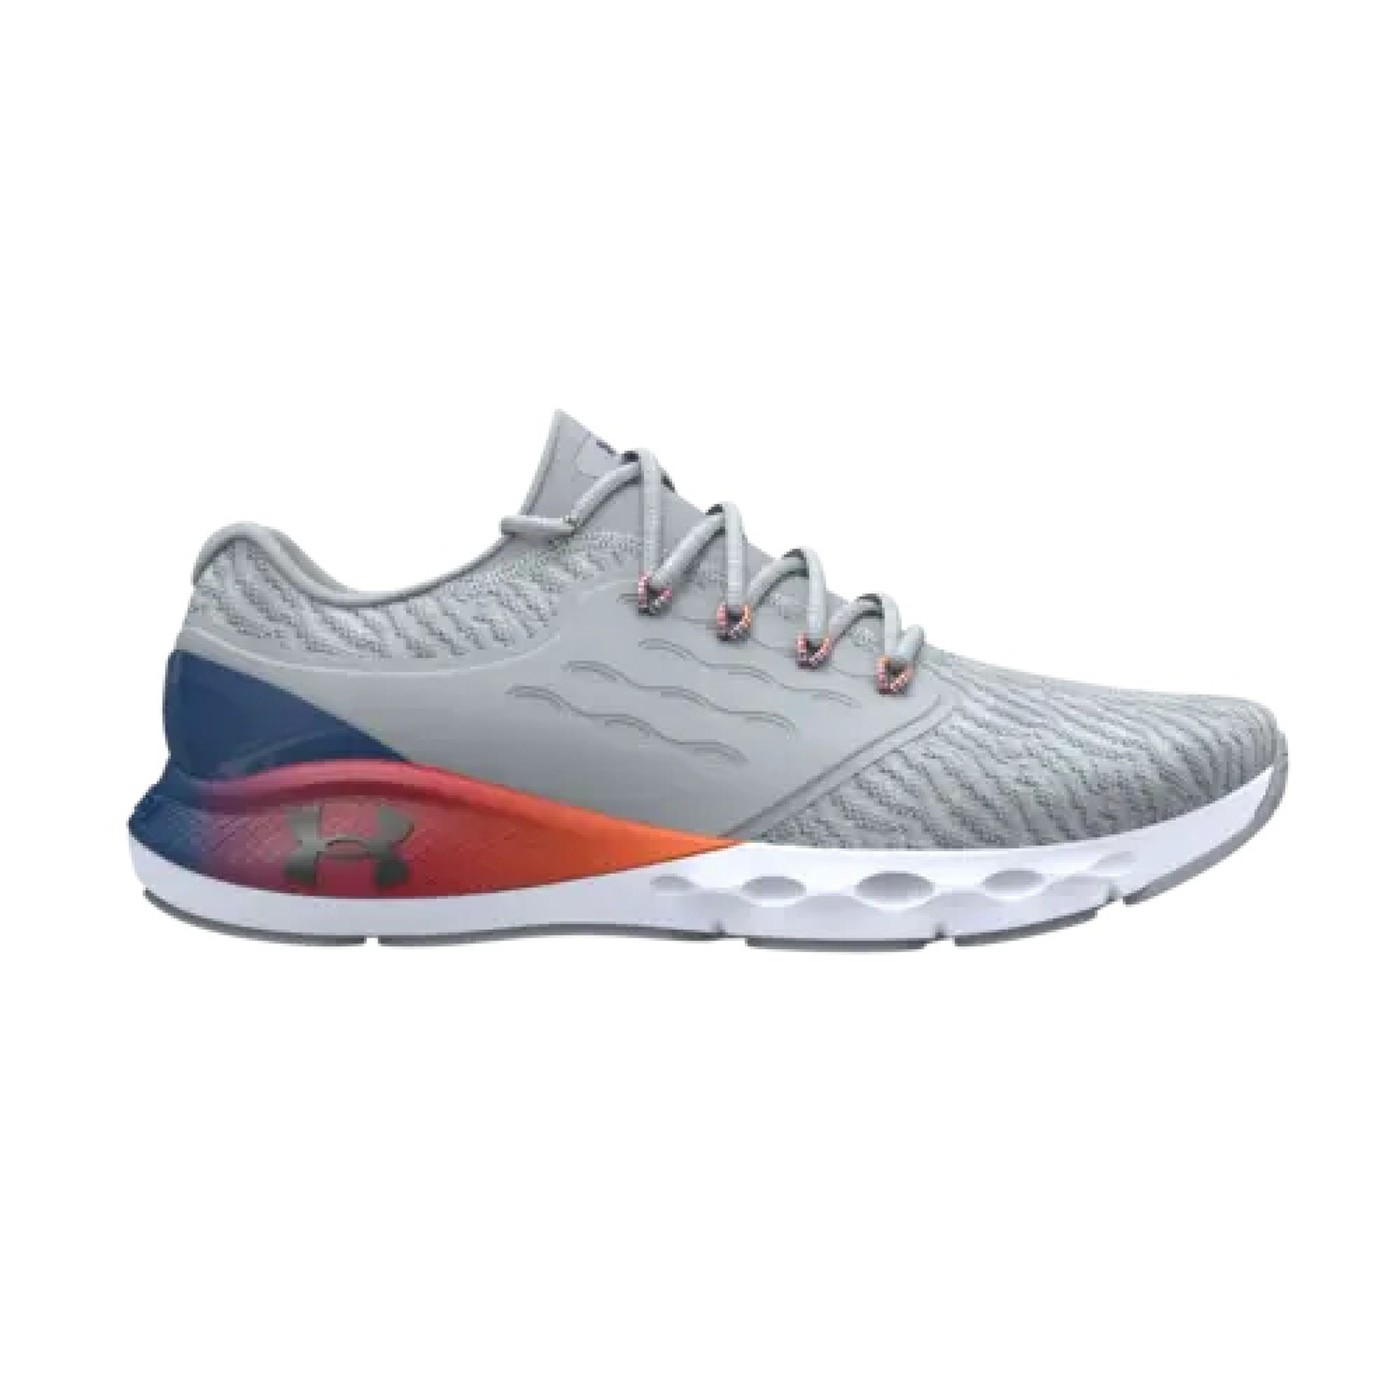 UNDER ARMOUR UA Charged Vantage Sp Pnr - Herren